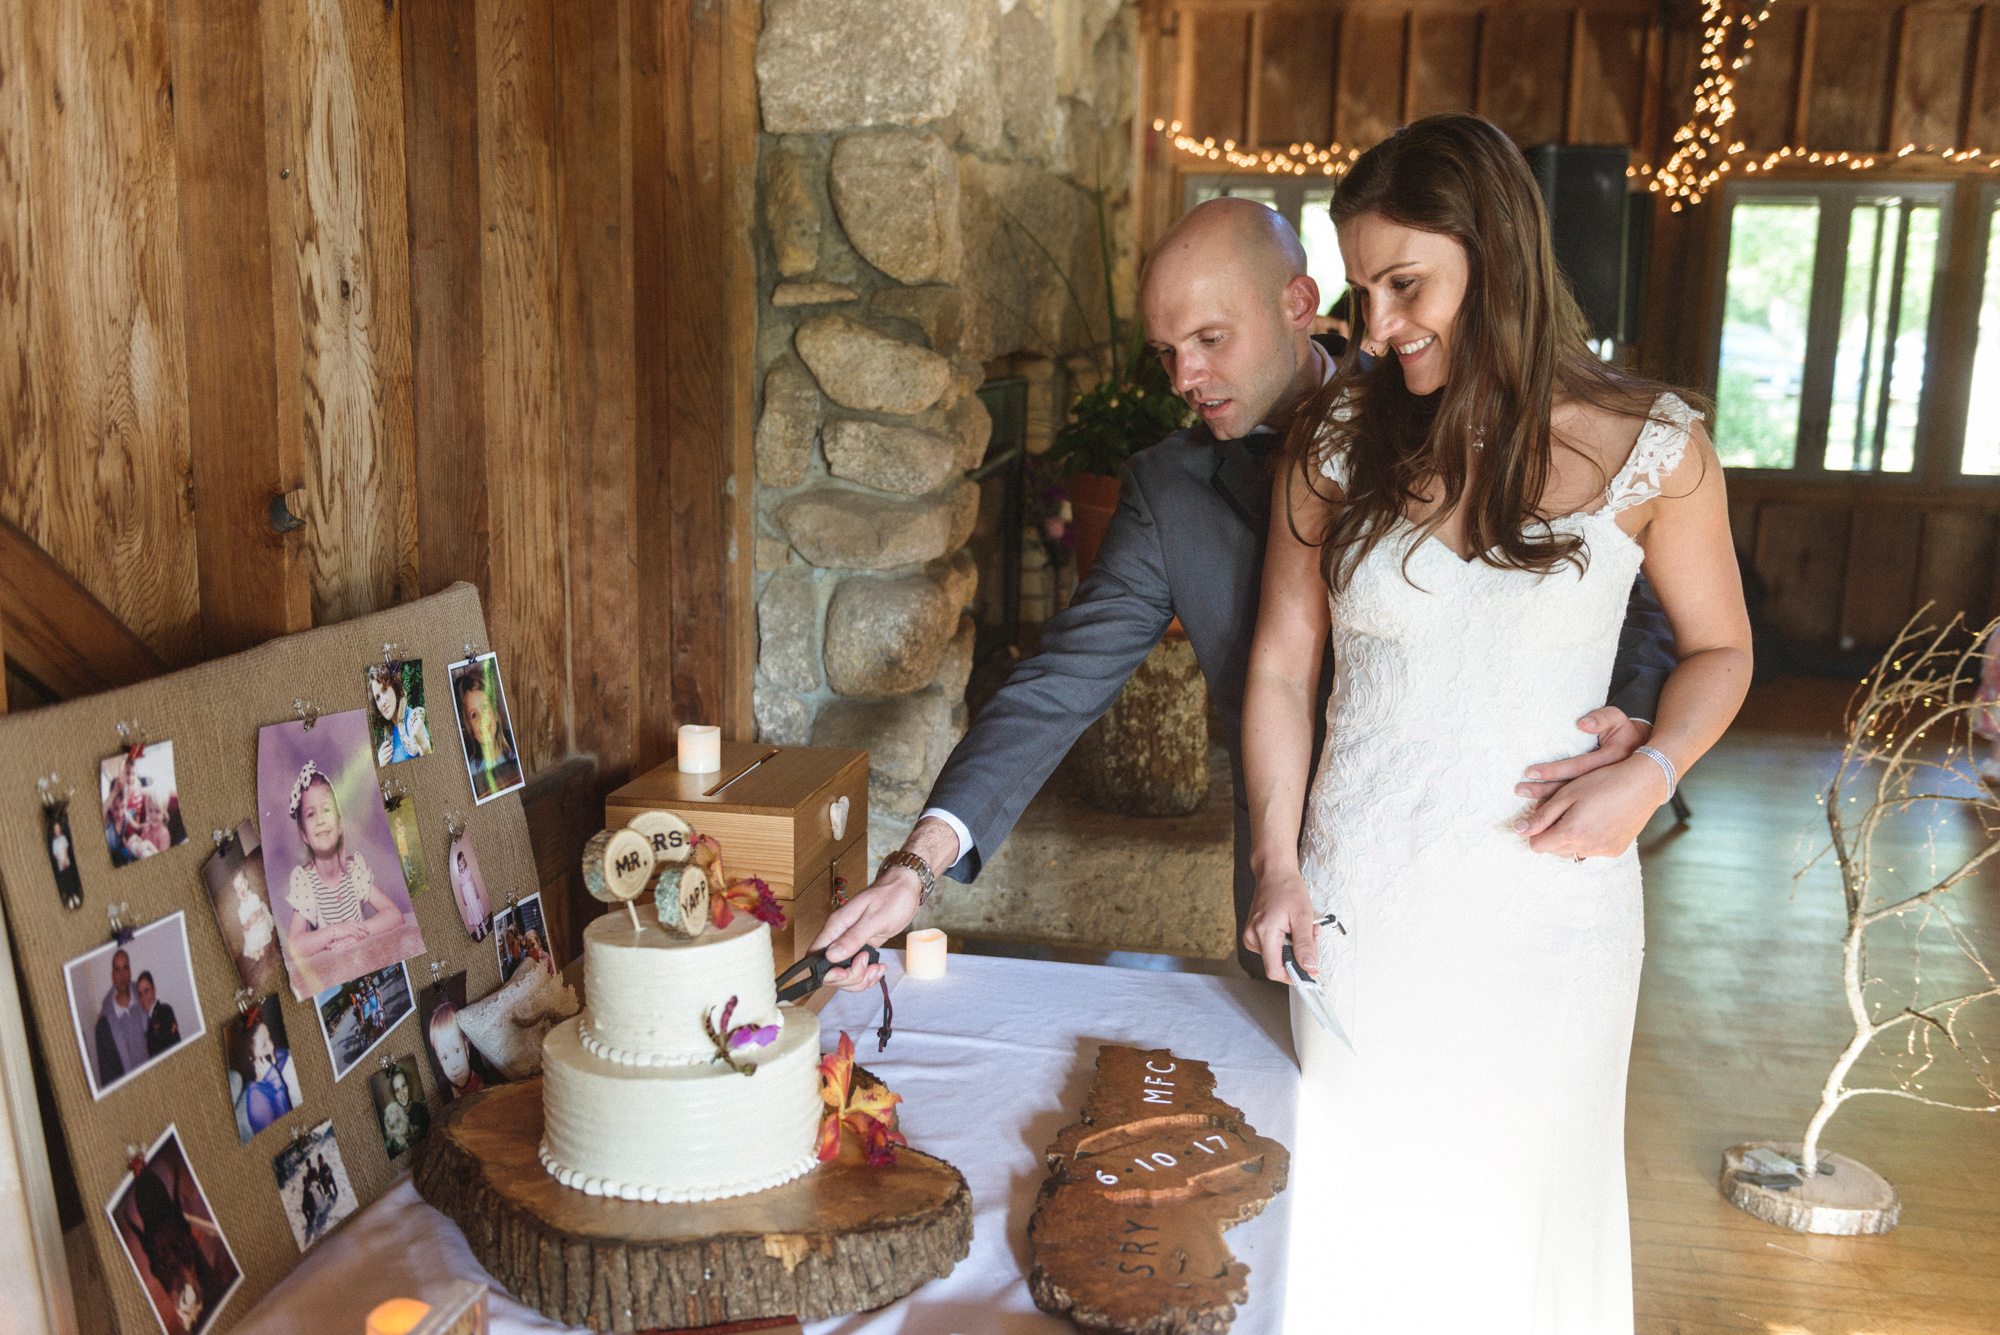 A bride and groom cutting a wedding cake near the fireplace inside the mainstay at the Sailing Camp Park in Oak Bluffs photo by David Welch Photography